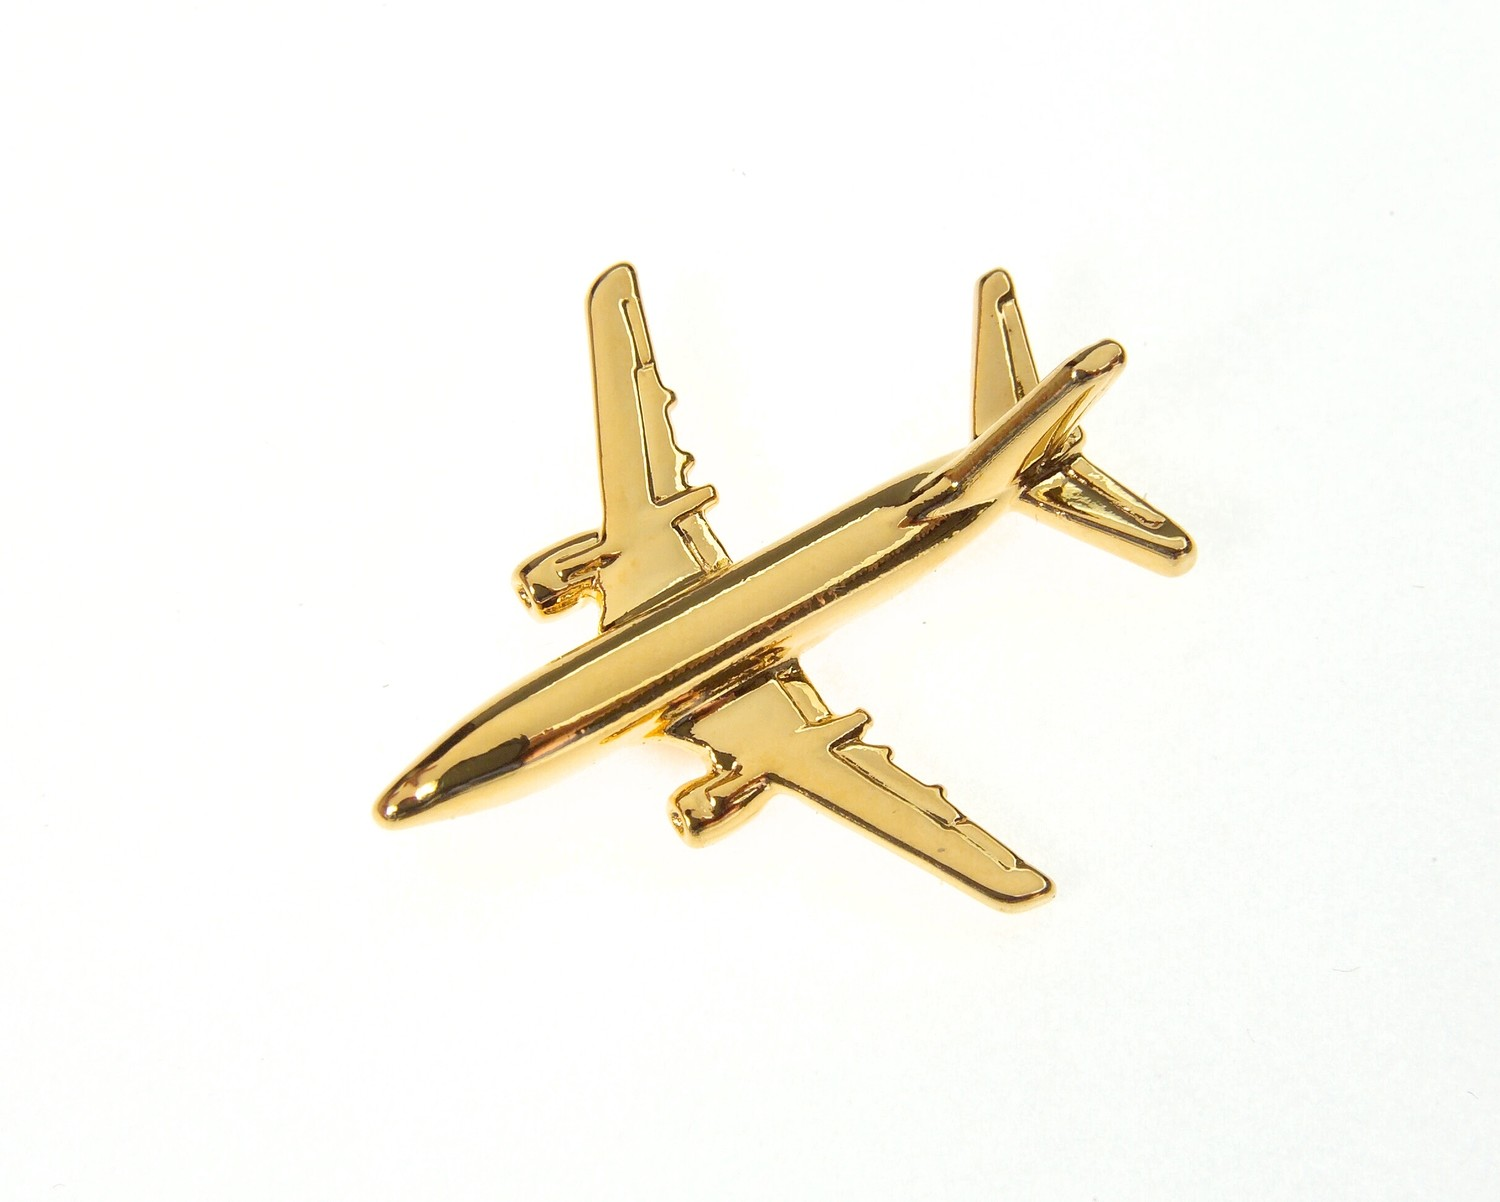 Boeing 737-500 Gold Plated Tie / Lapel Pin